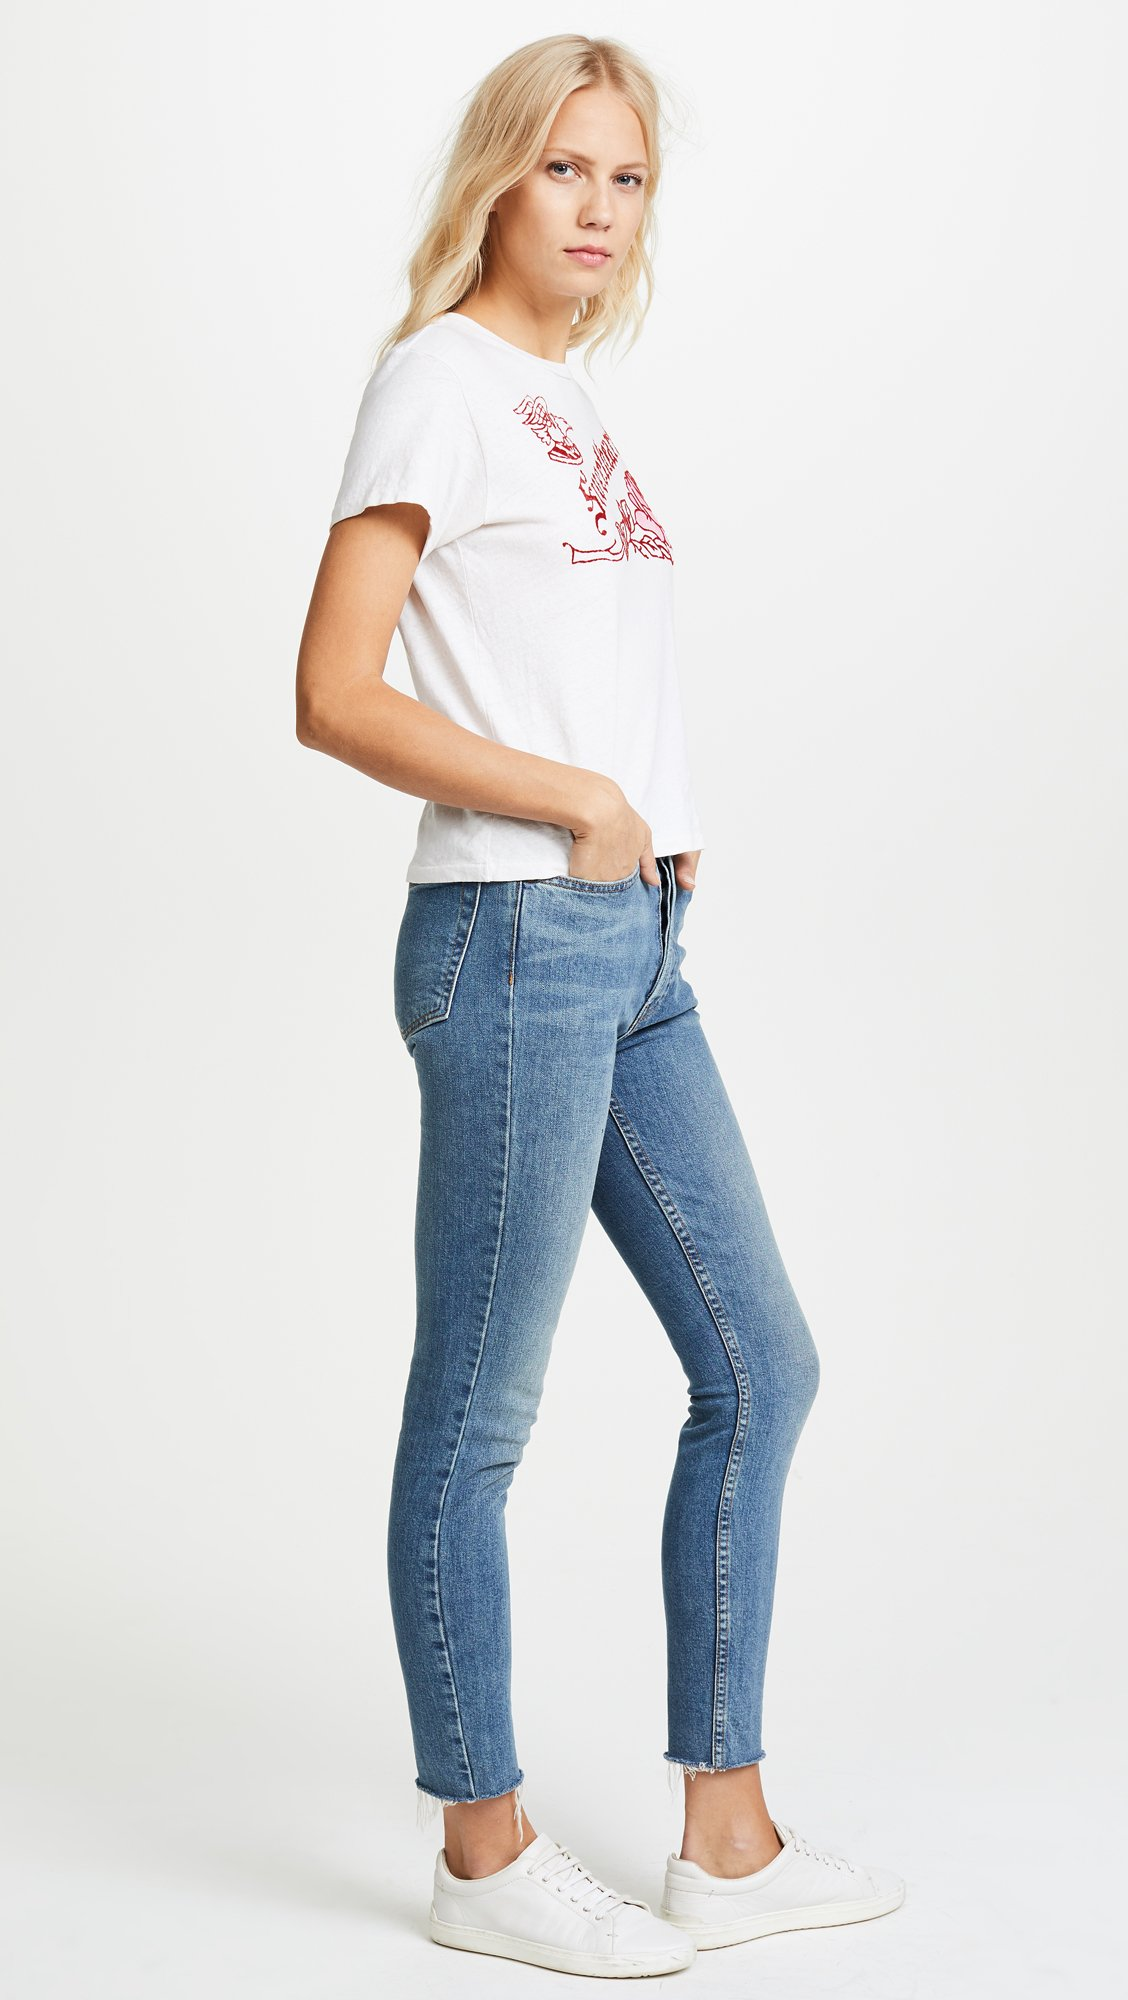 RE/DONE Women's Classic Sweetheart Tee, Vintage White, Medium by RE/DONE (Image #4)